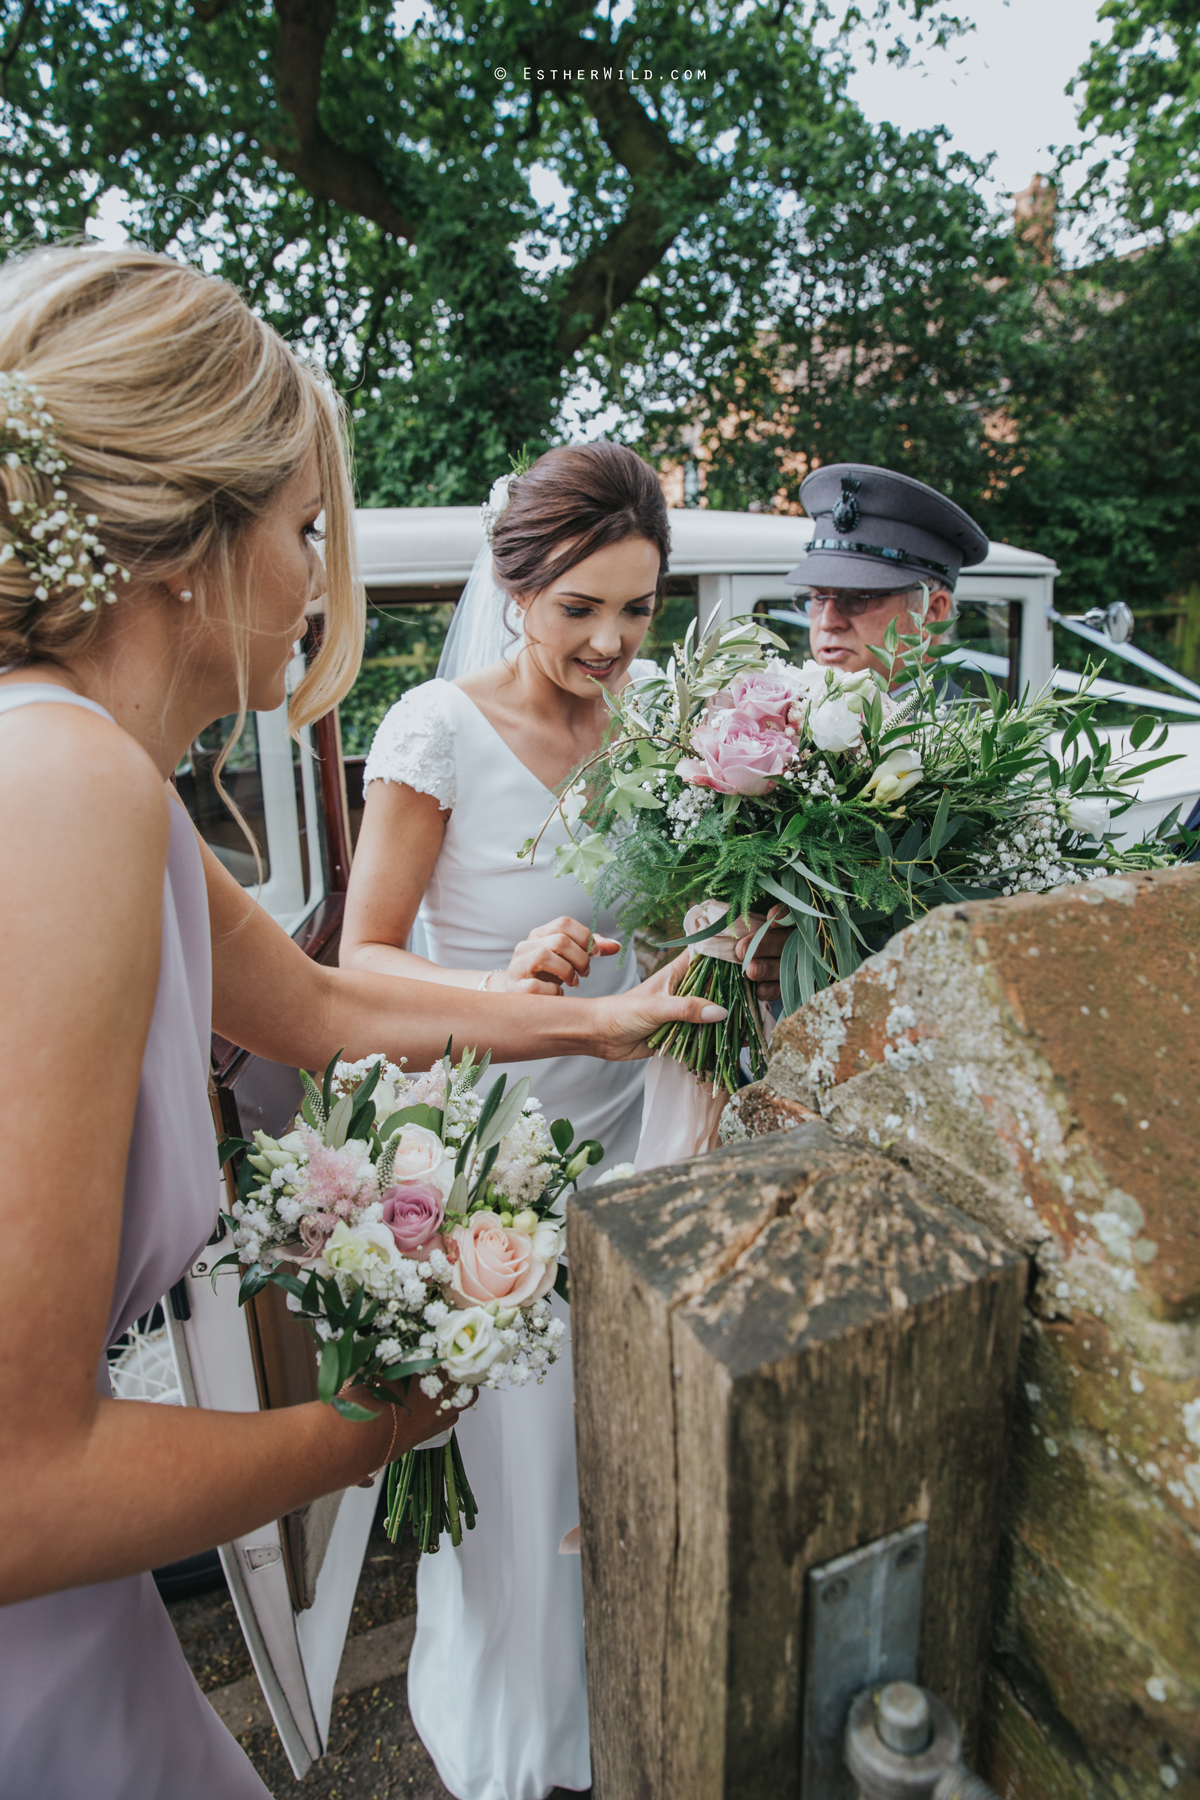 Wootton_Wedding_Copyright_Esther_Wild_Photographer_IMG_0803.jpg